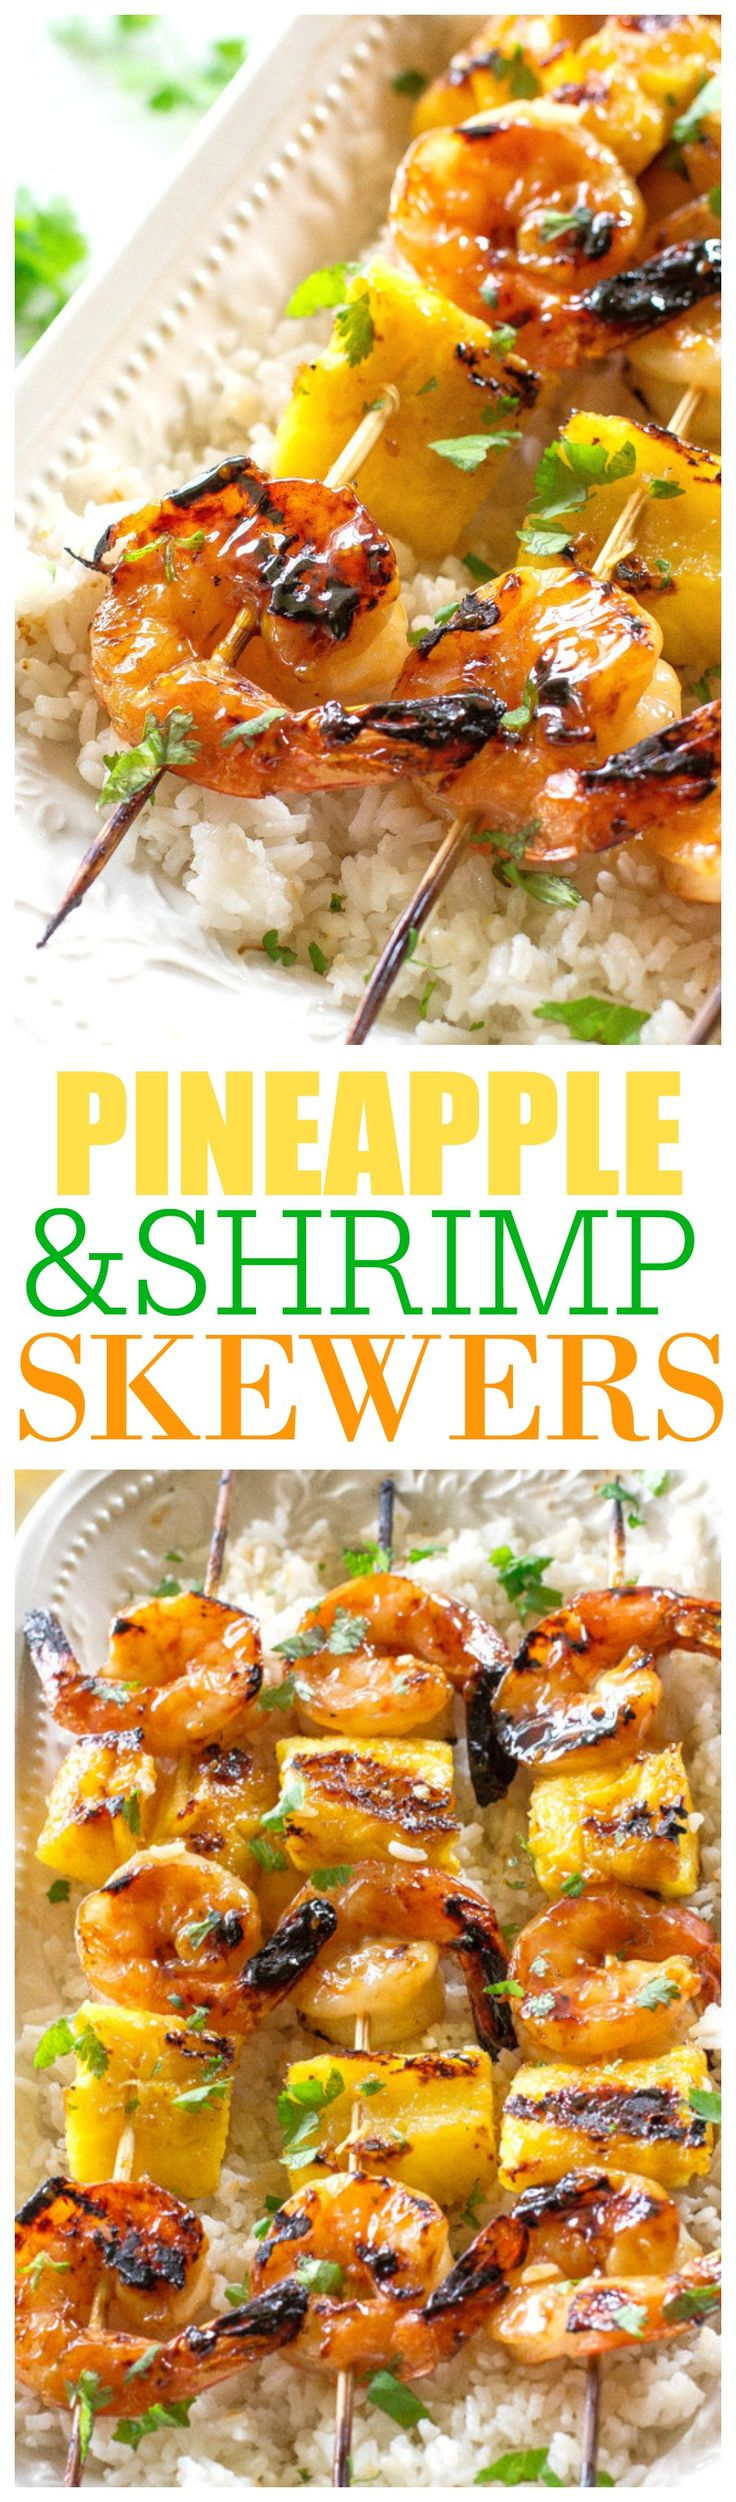 These Grilled Shrimp and Pineapple Skewers are served over coconut rice and are covered with Sweet Baby Ray's Teriyaki glaze. the-girl-who-ate-everything.com